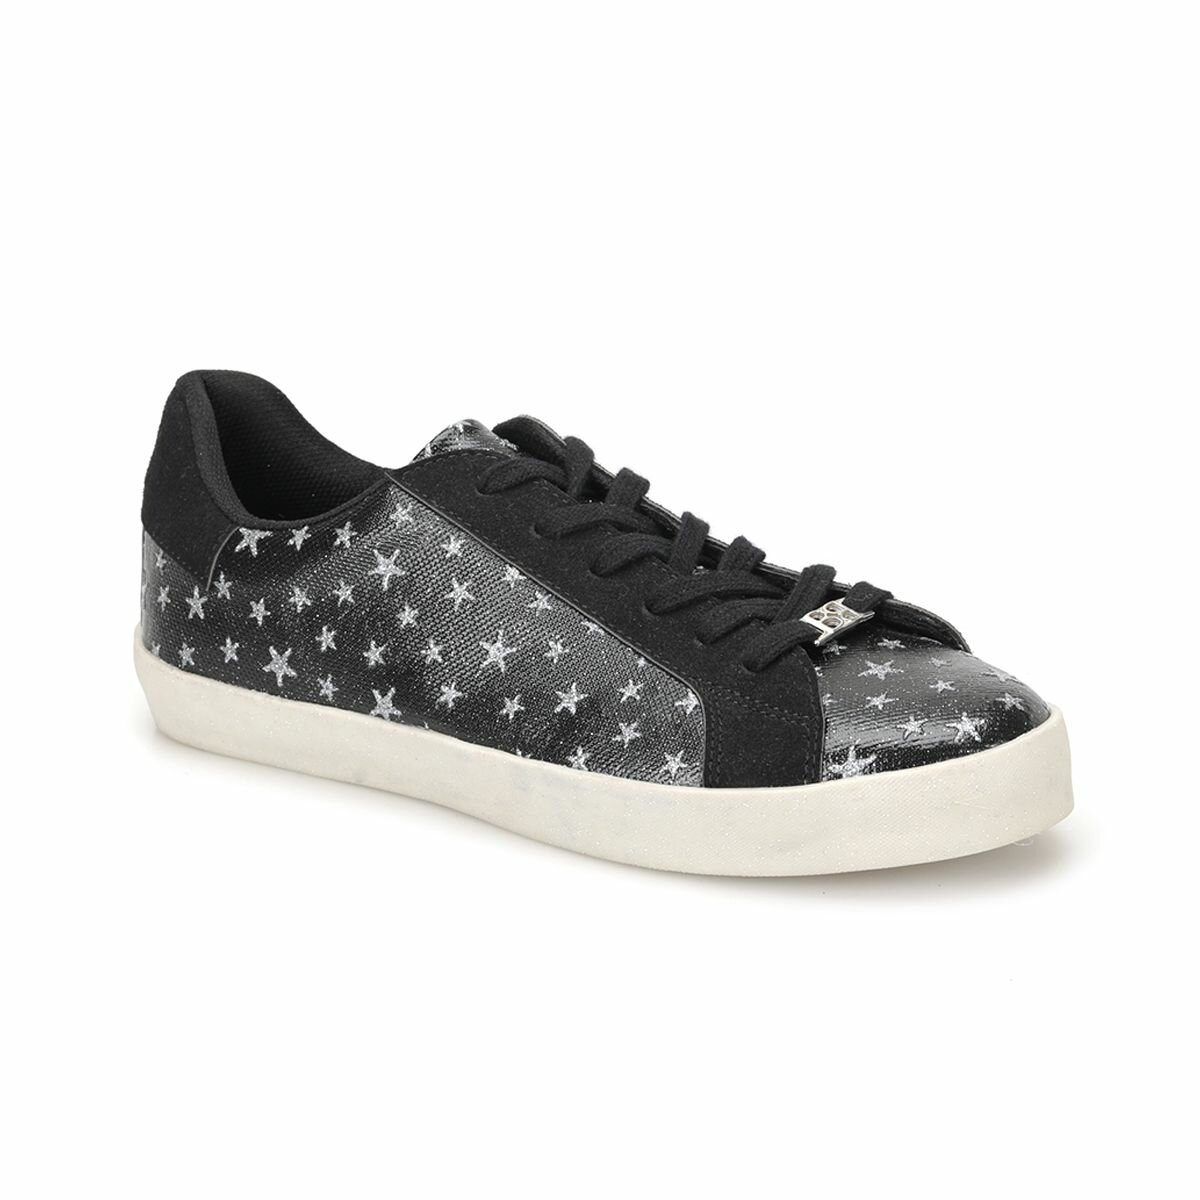 FLO 18K-118 Black Women 'S Sneaker Shoes BUTIGO